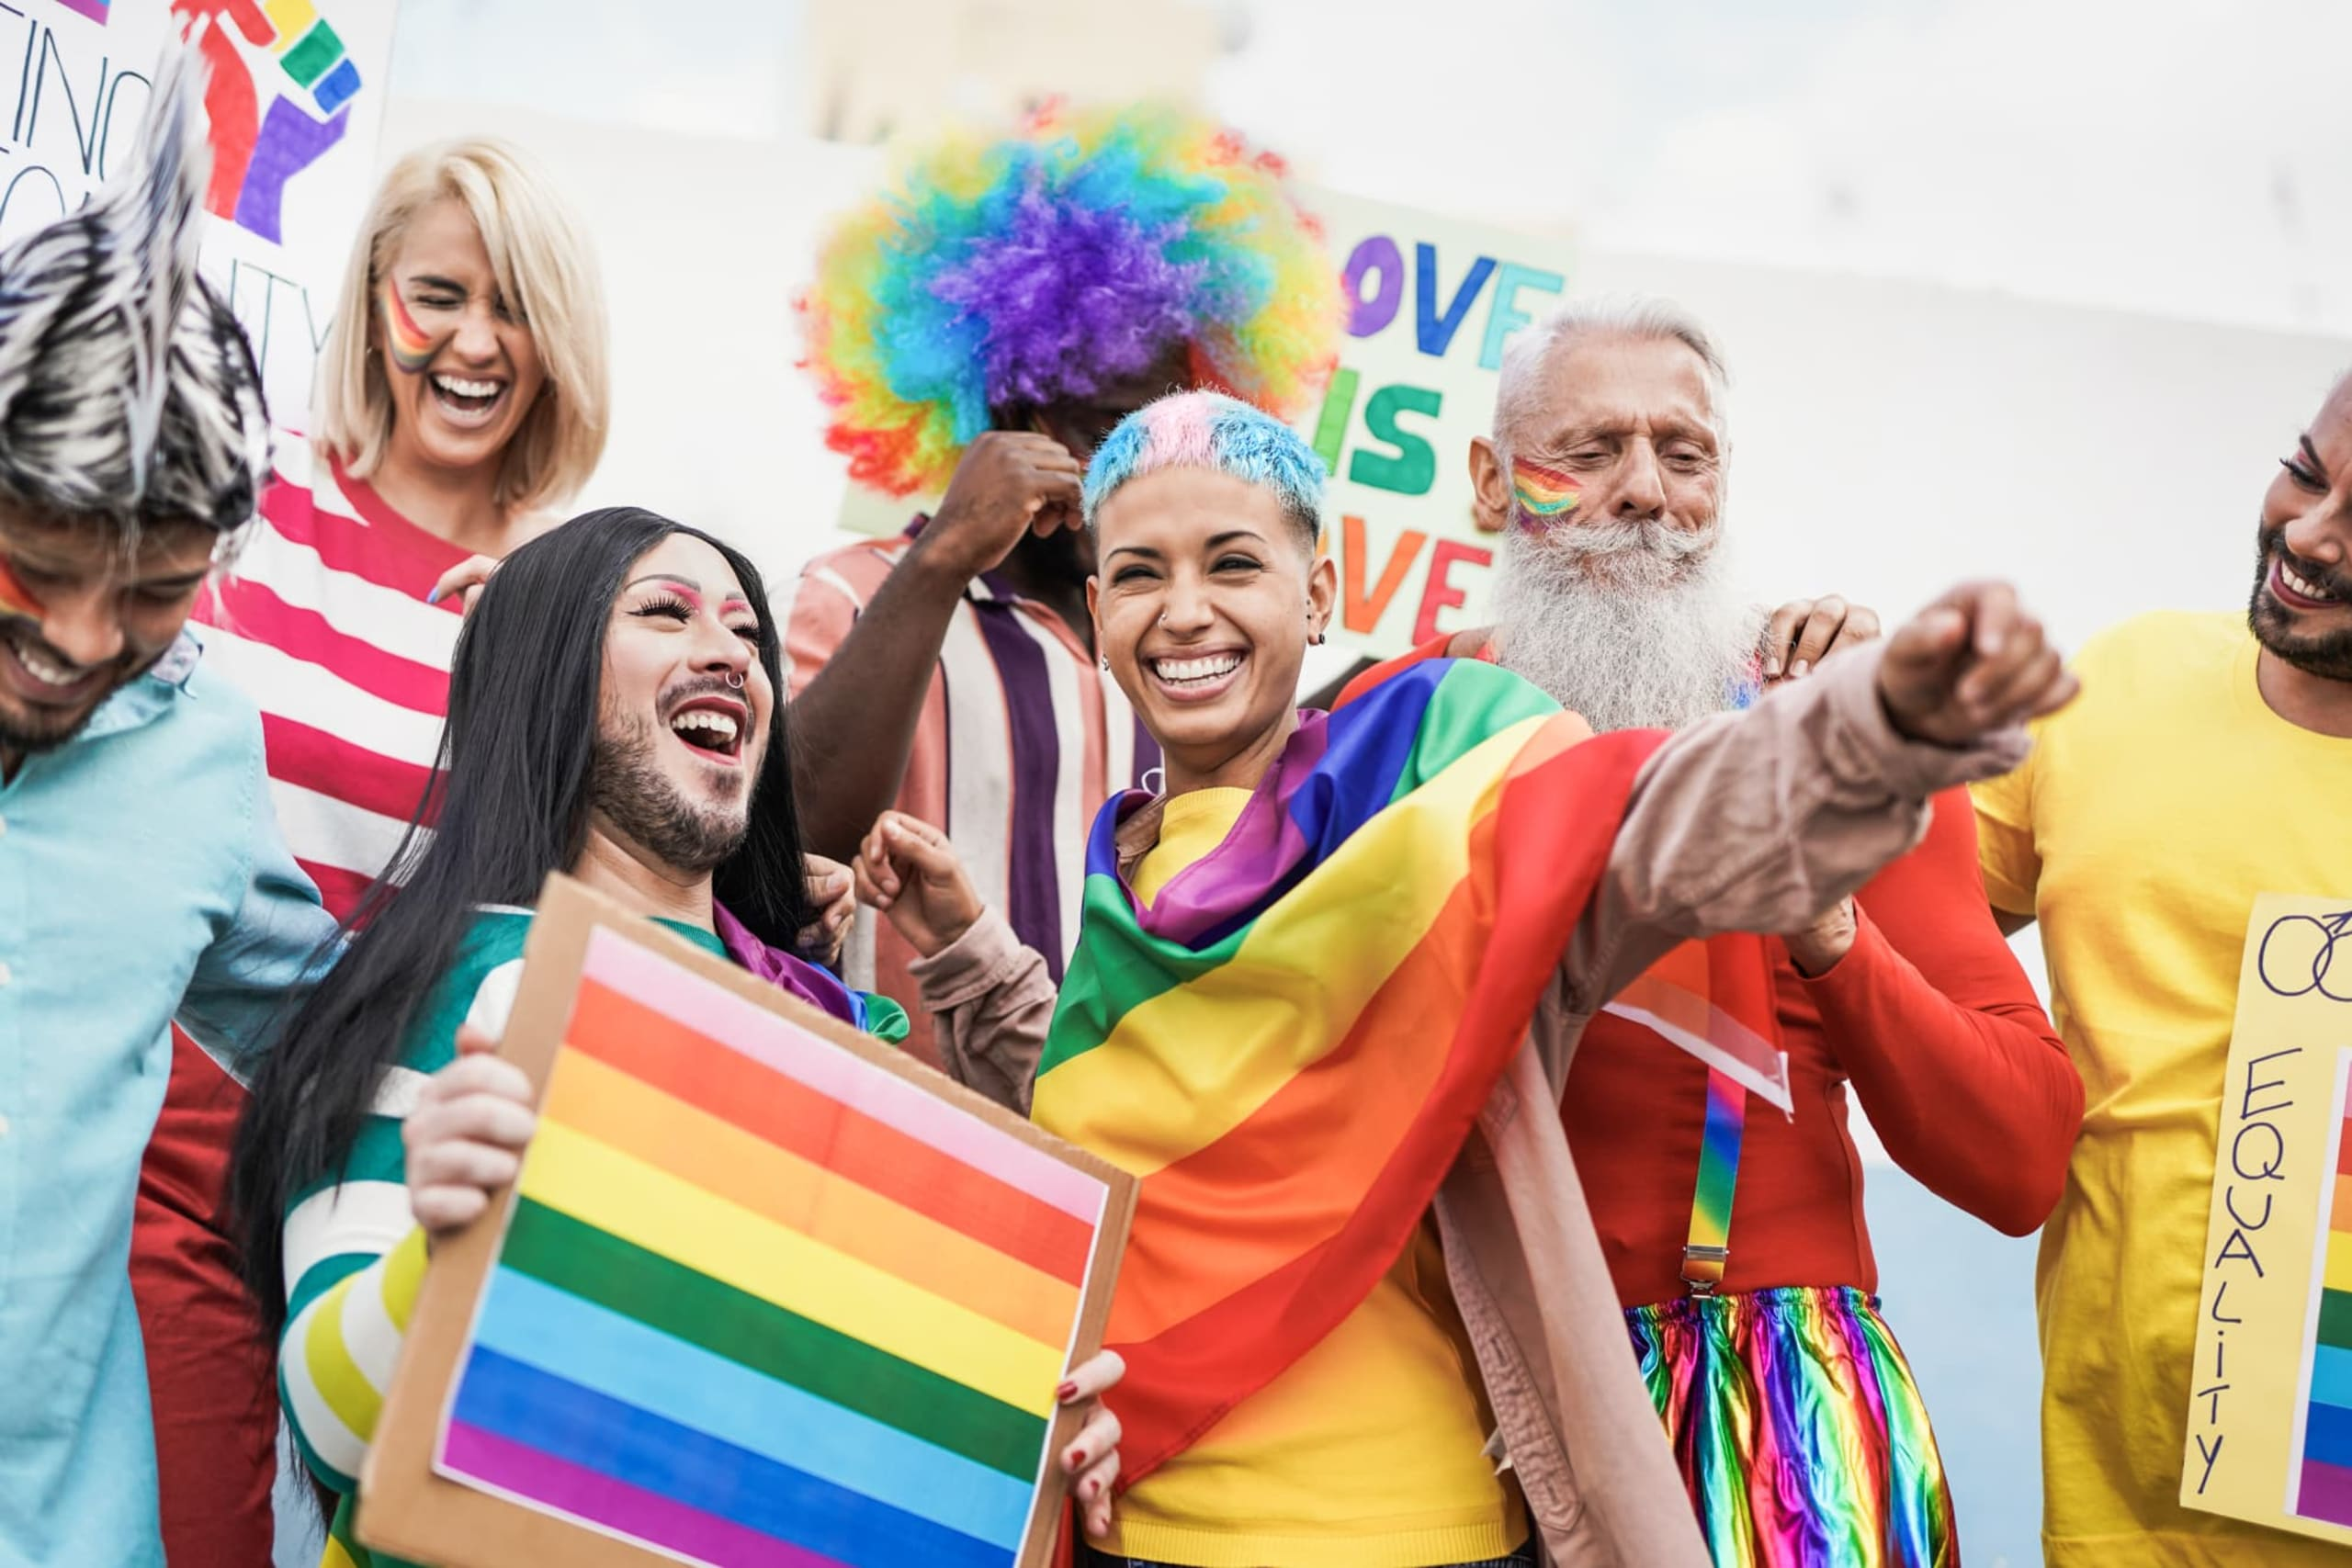 How to Find a LGBTQ-Friendly College